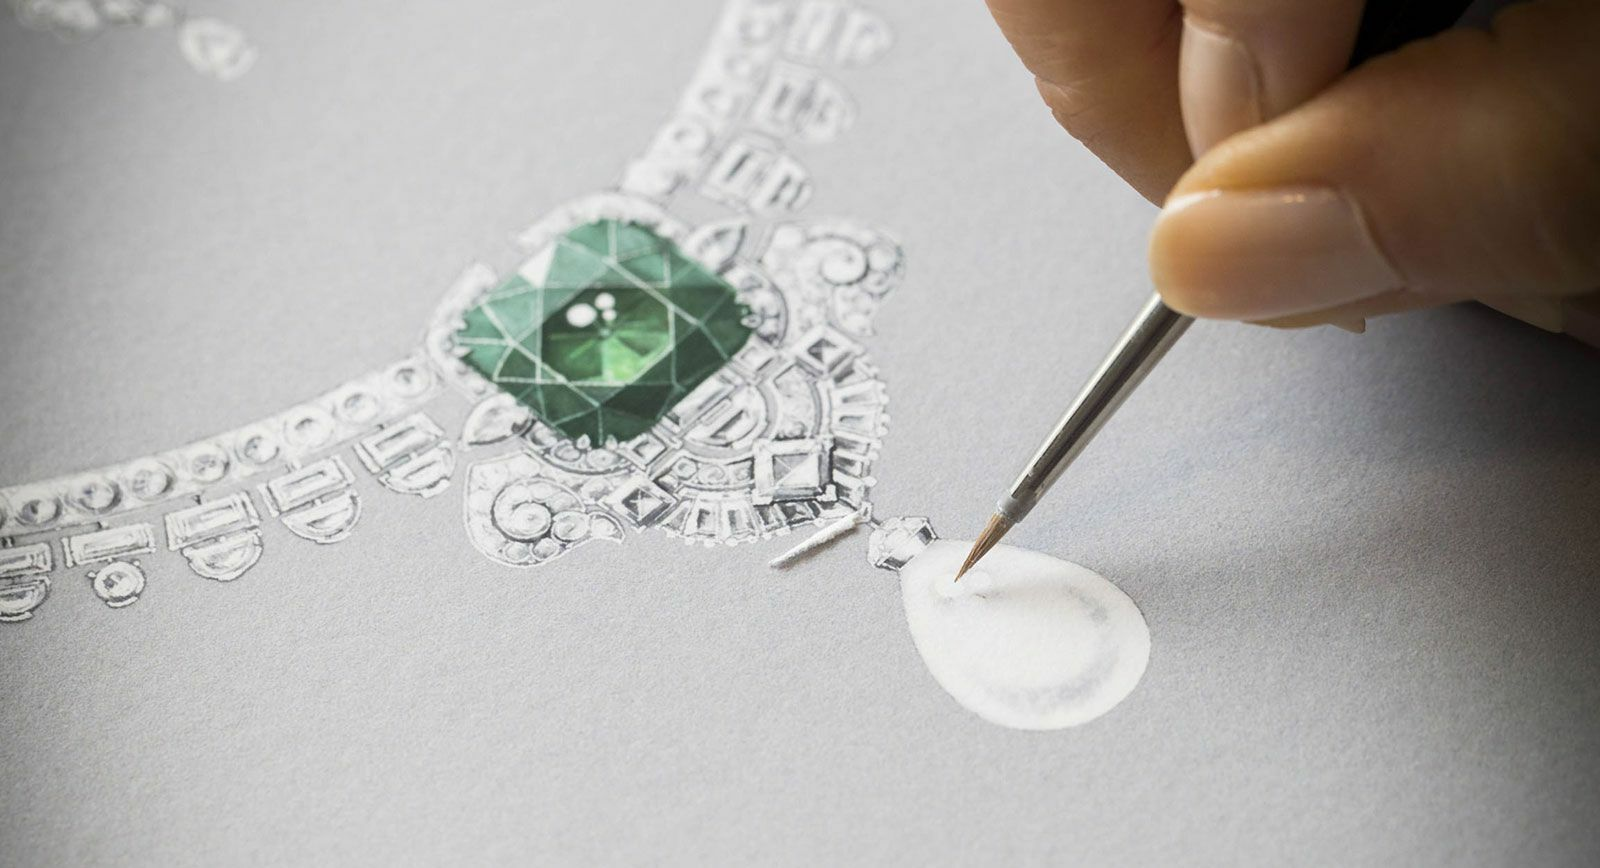 Émeraude en Majesté by Van Cleef & Arpels: Emeralds in All Their Glory